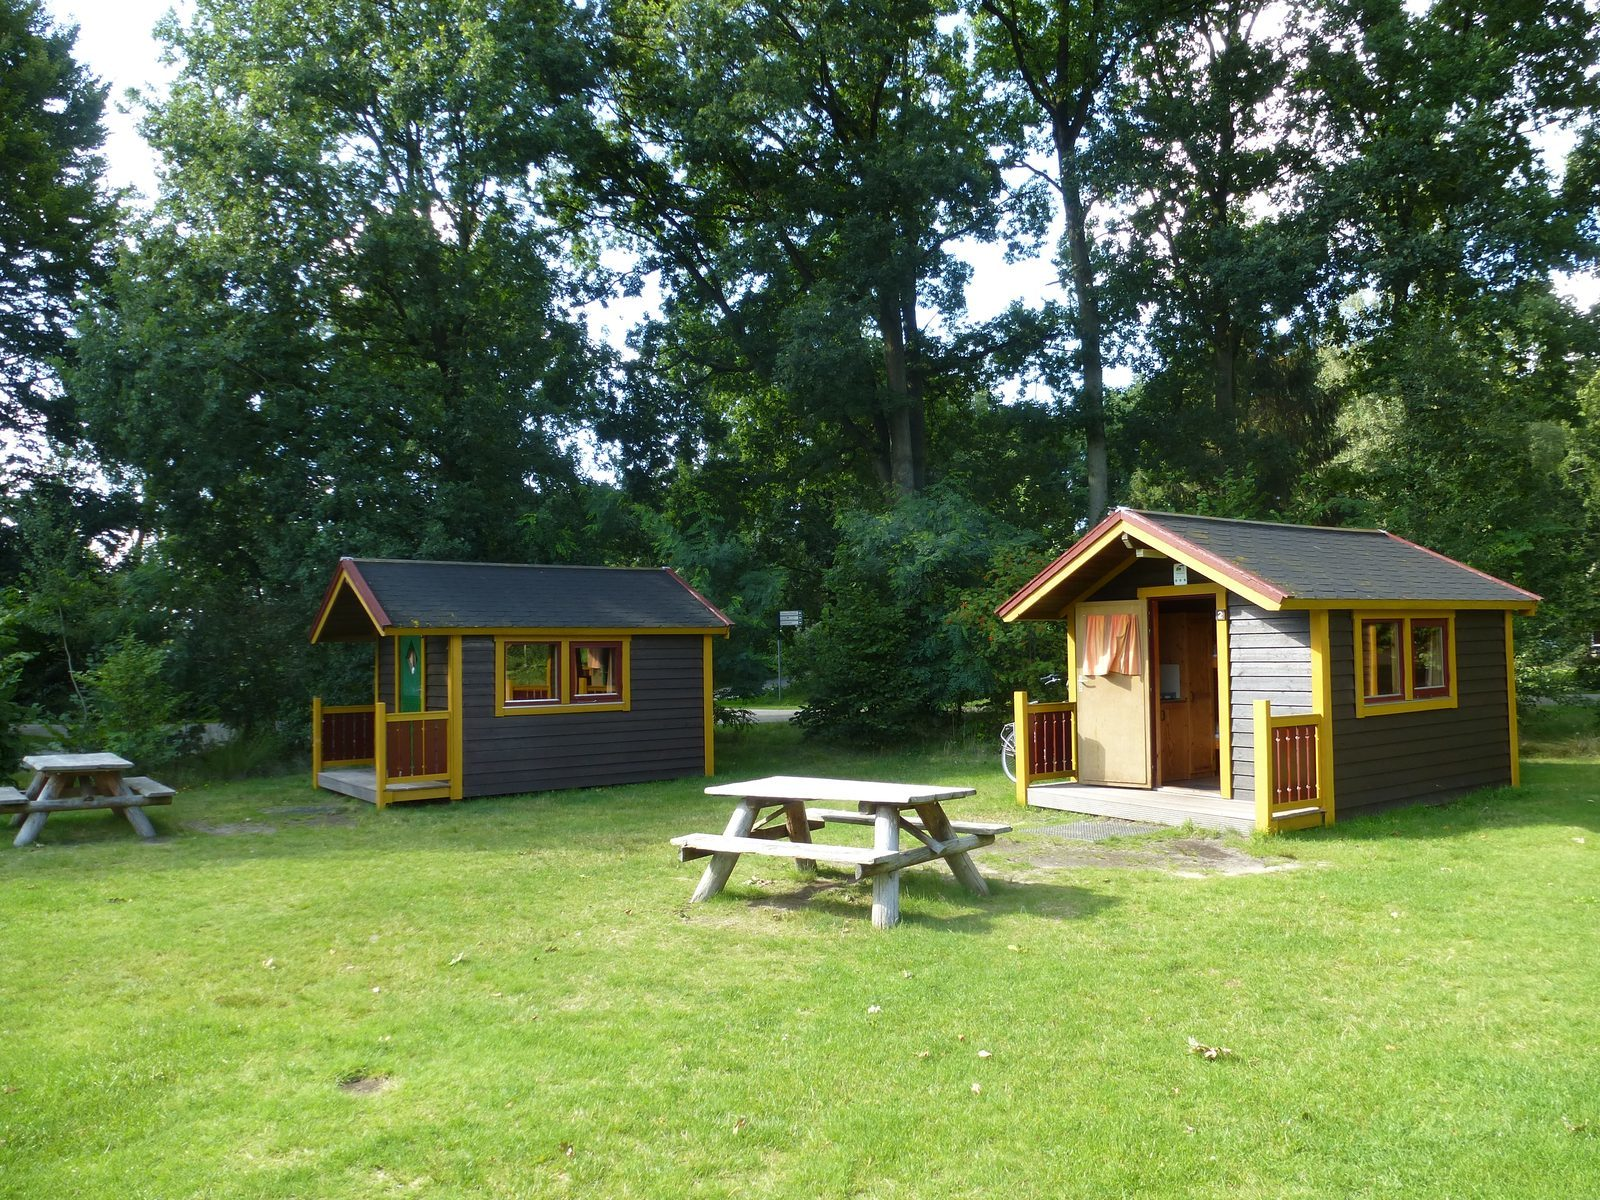 Hikers' cabins